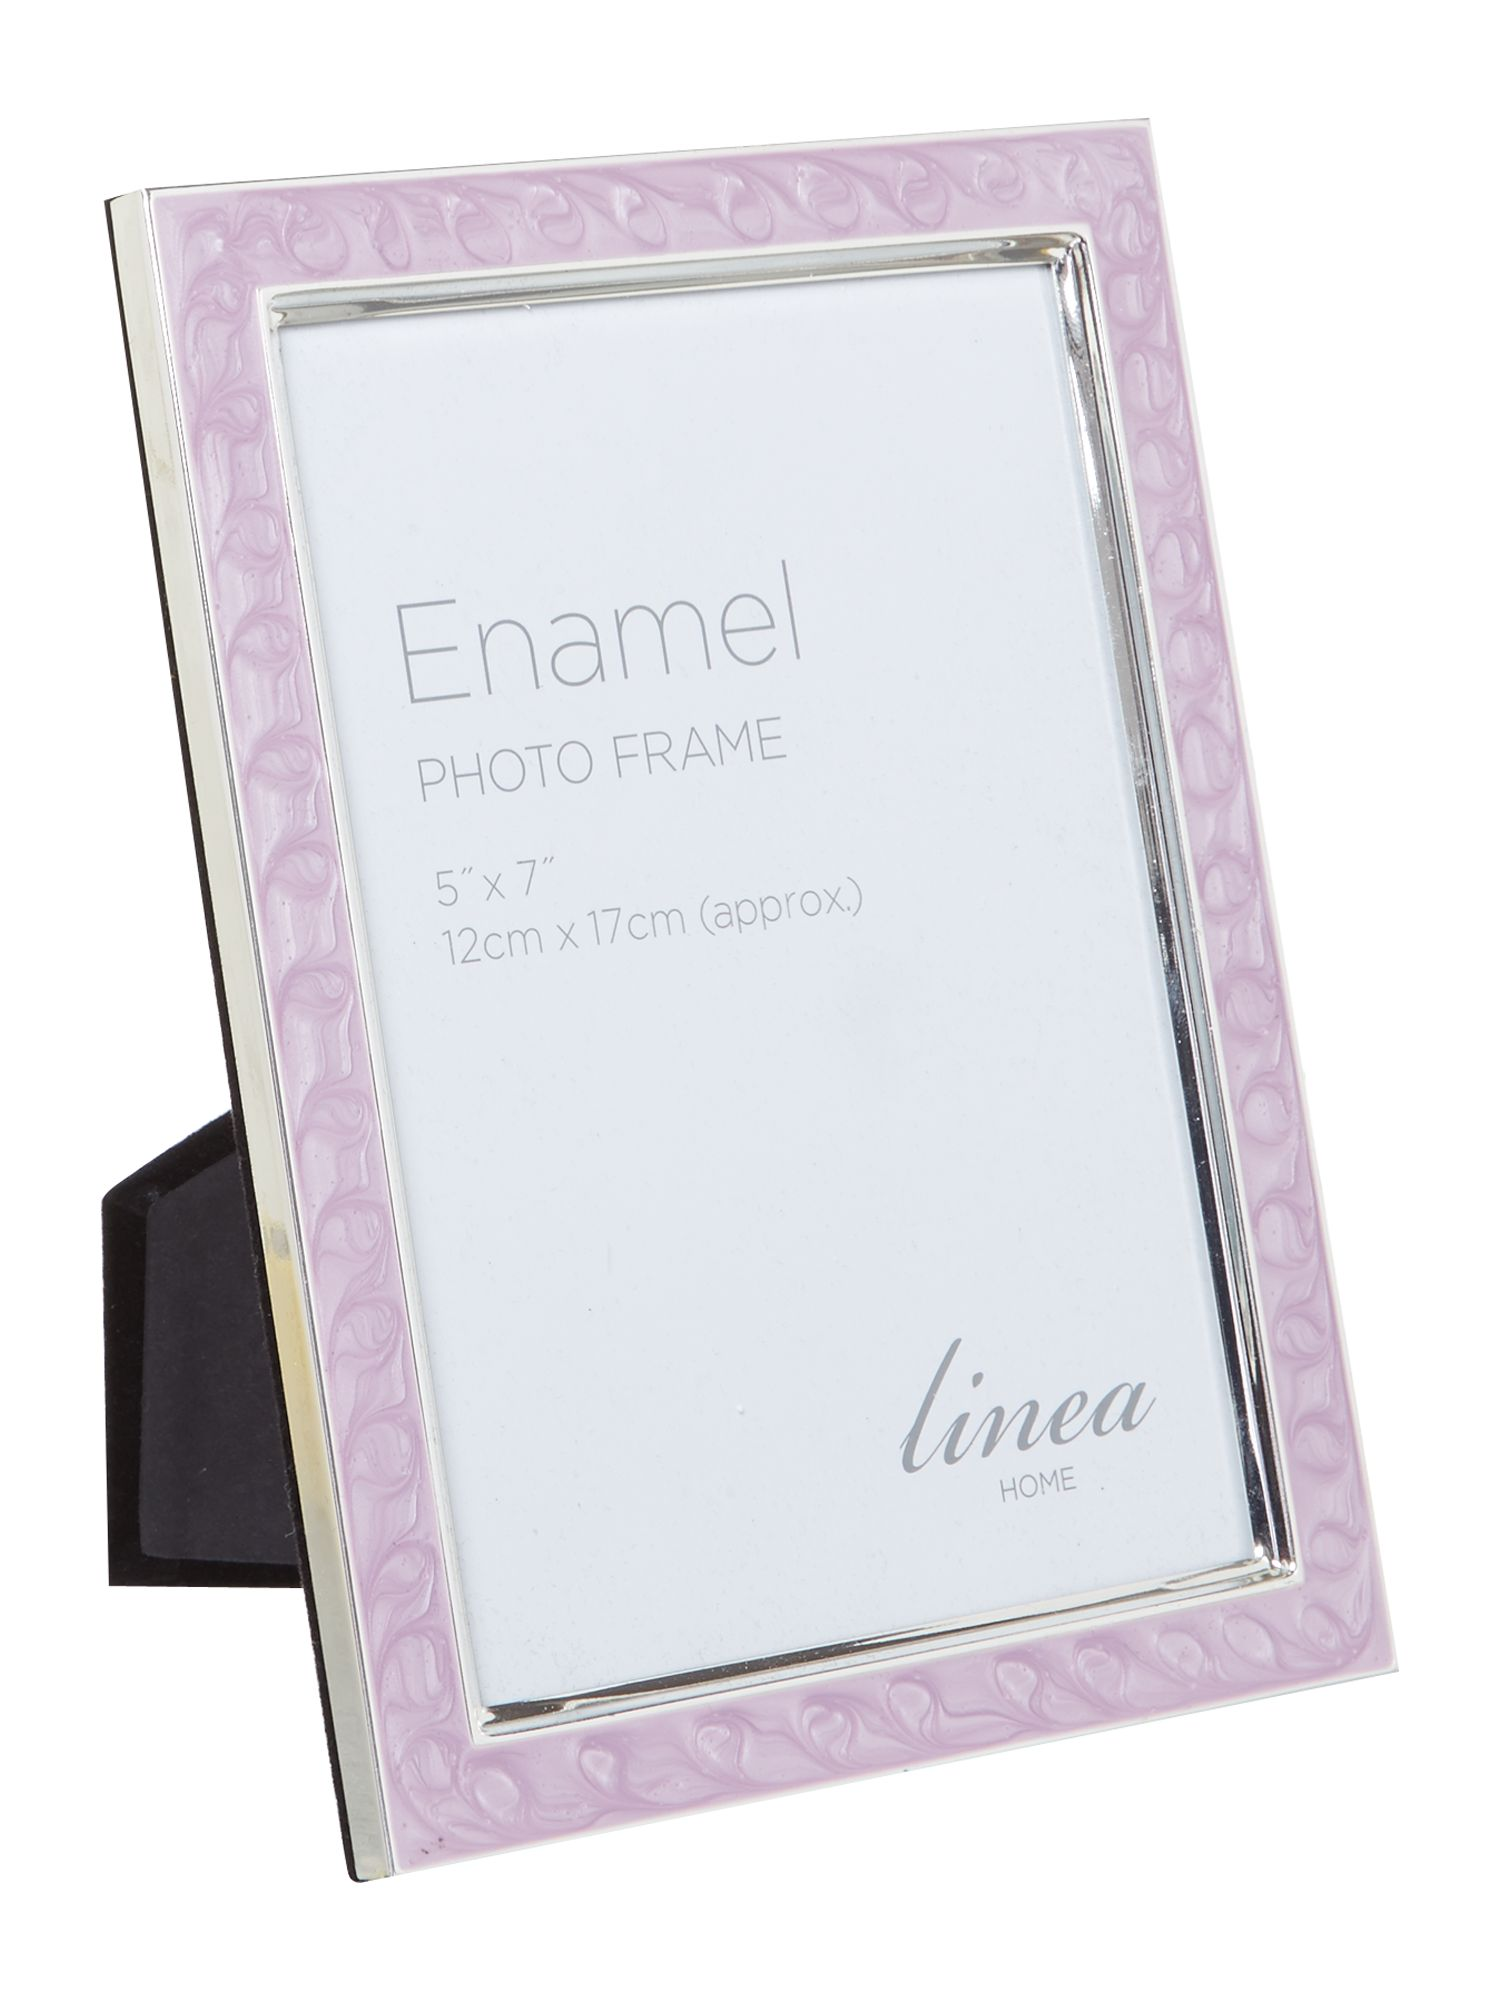 Lilac enamel photo frame, 5 x 7